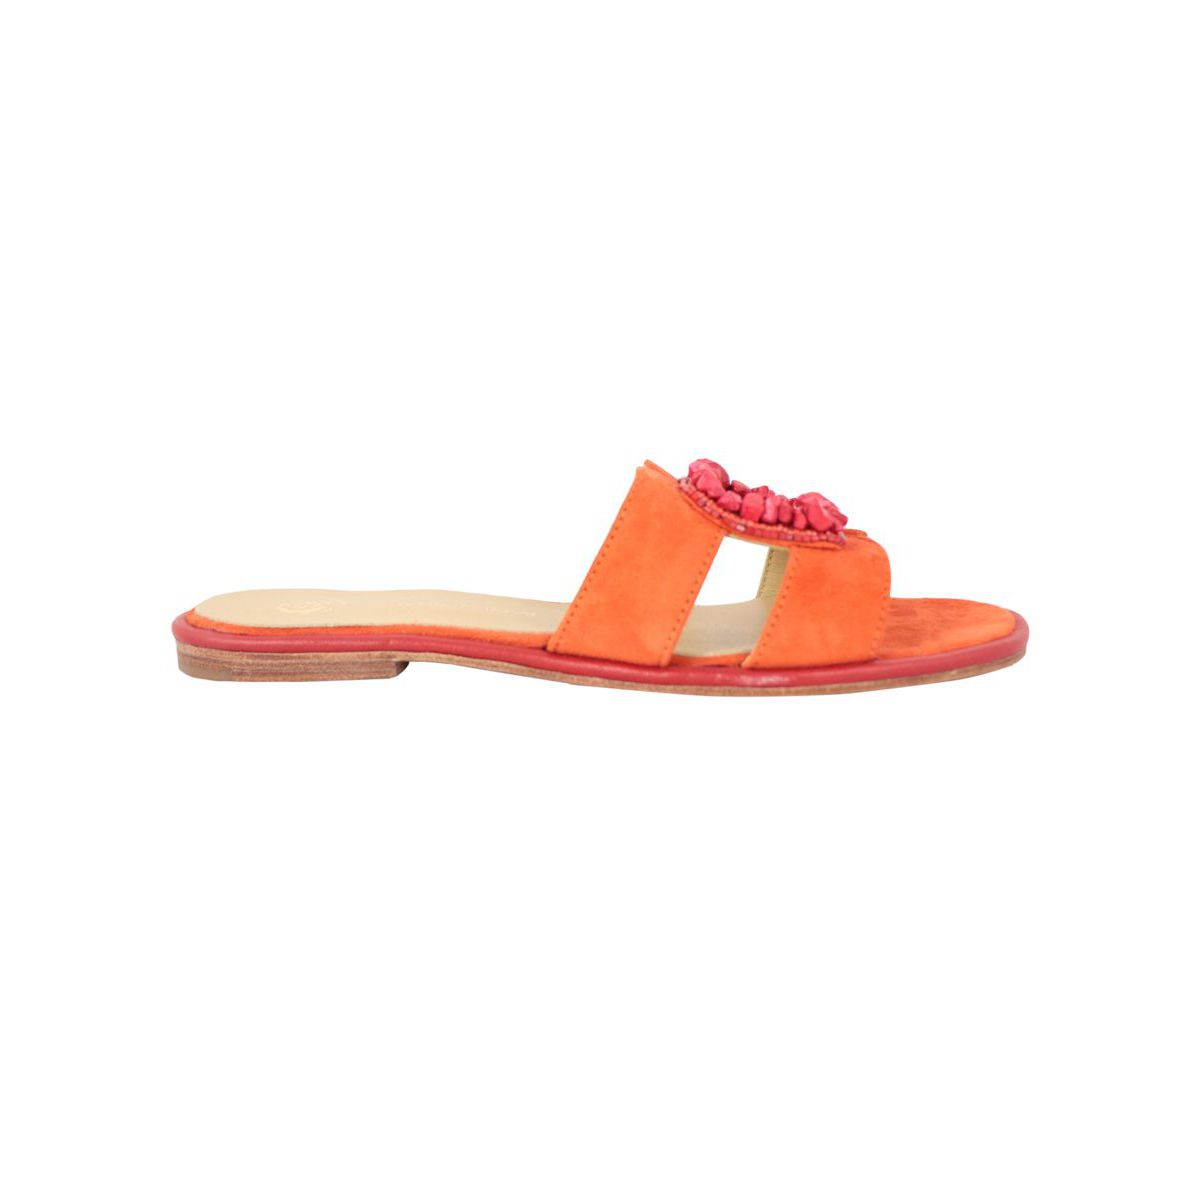 Capri Stones sandal in suede effect fabric Orange Maliparmi